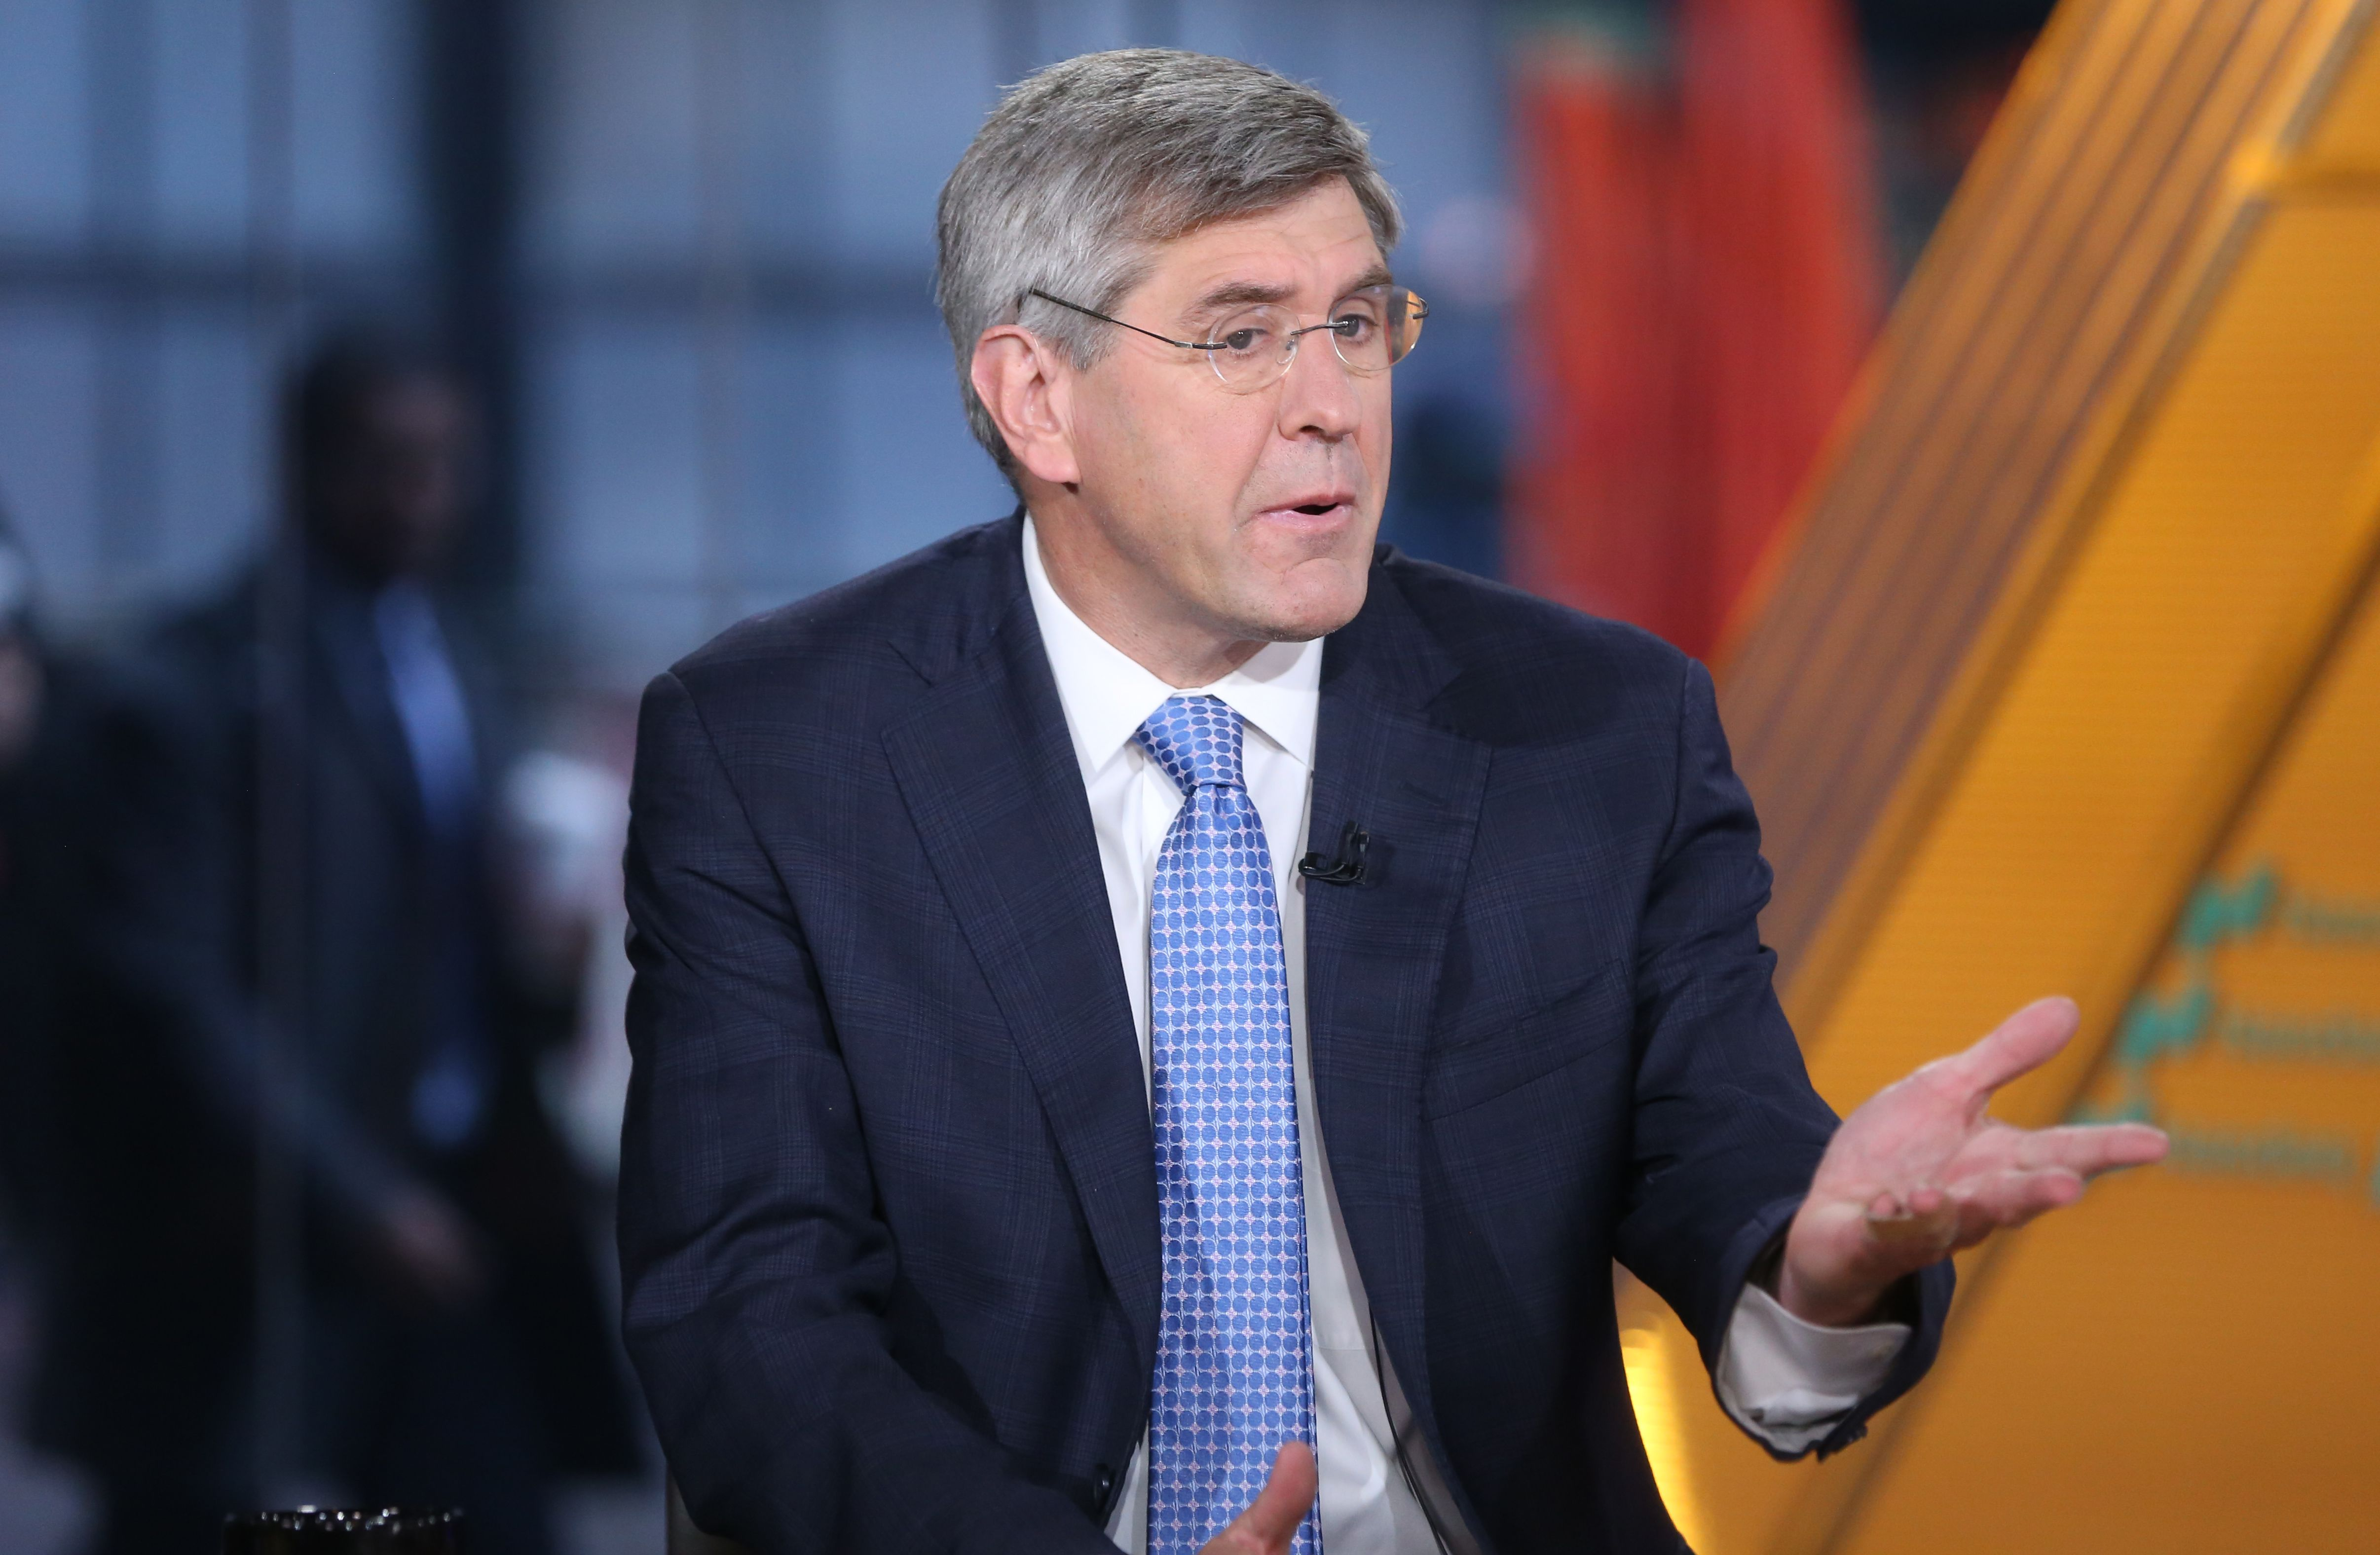 Stephen Moore says decline in 'male earnings' is big issue for economy